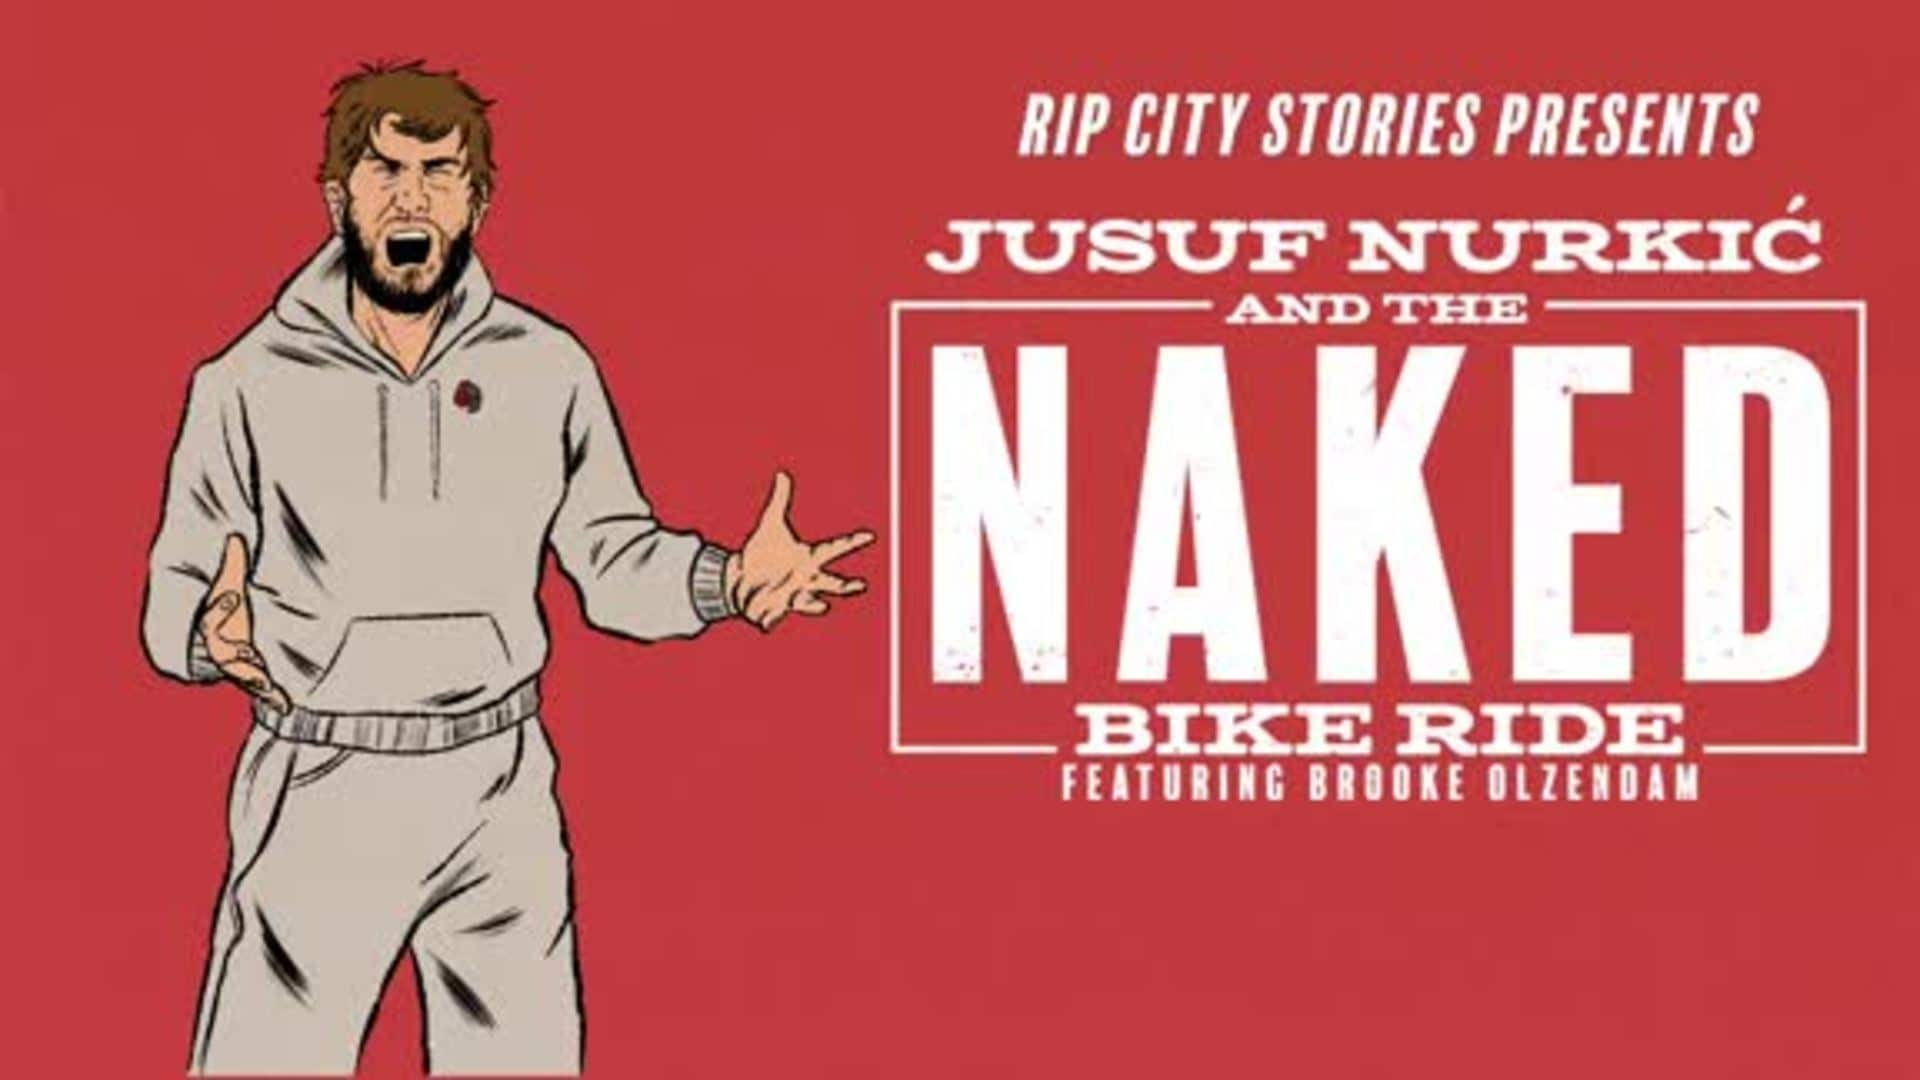 Nurk doesn't get the Naked Bike Ride | Rip City Stories